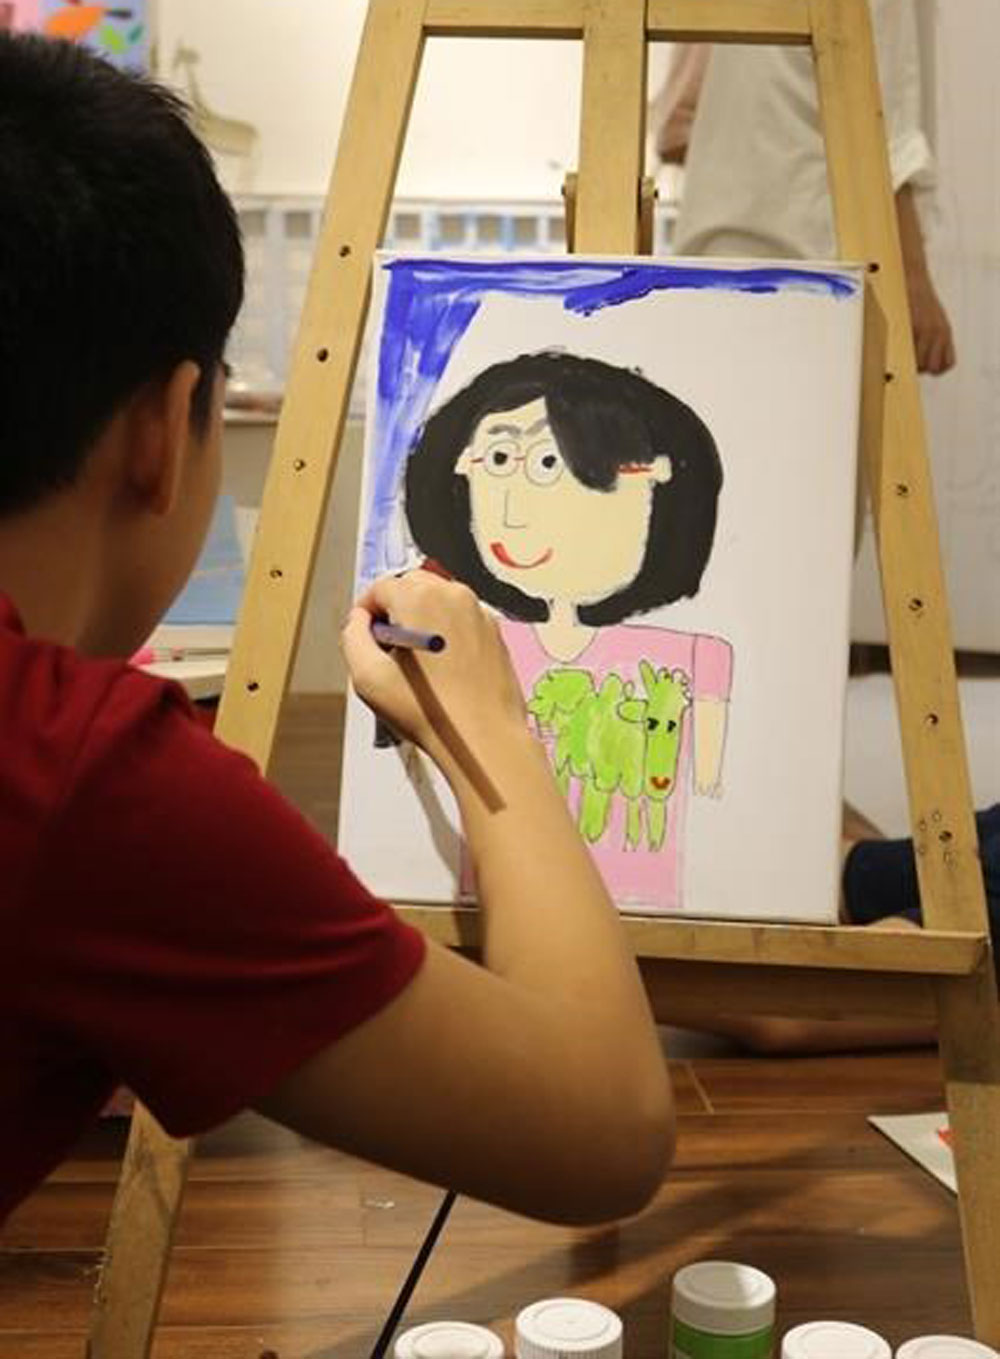 Exhibition showcases, art works, autistic children, children with autism, Khong Thoi Gian, No Time, lifestyle products